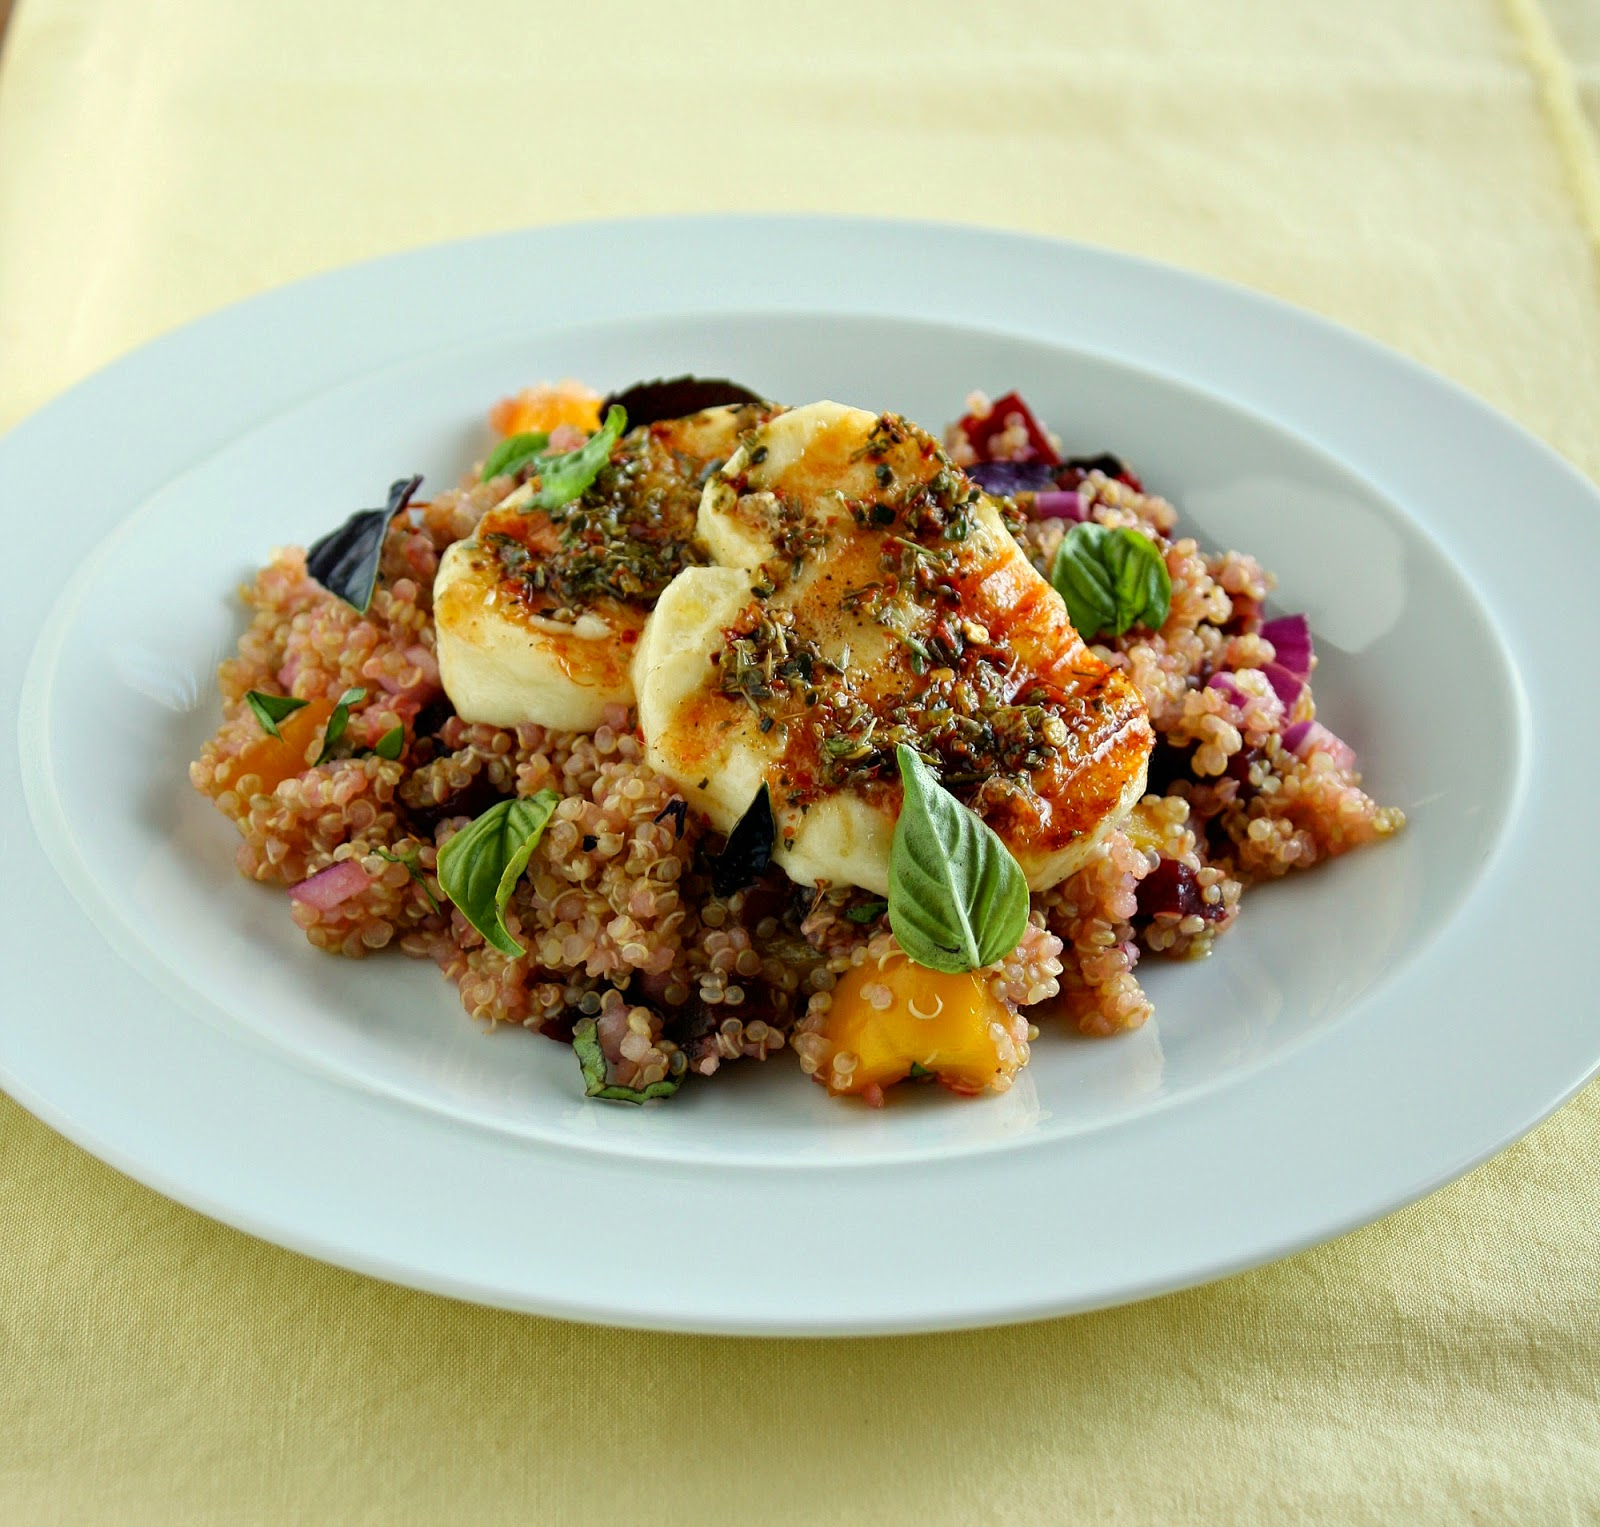 grilled halloumi with quinoa & beetroot salad (& my struggle with ...